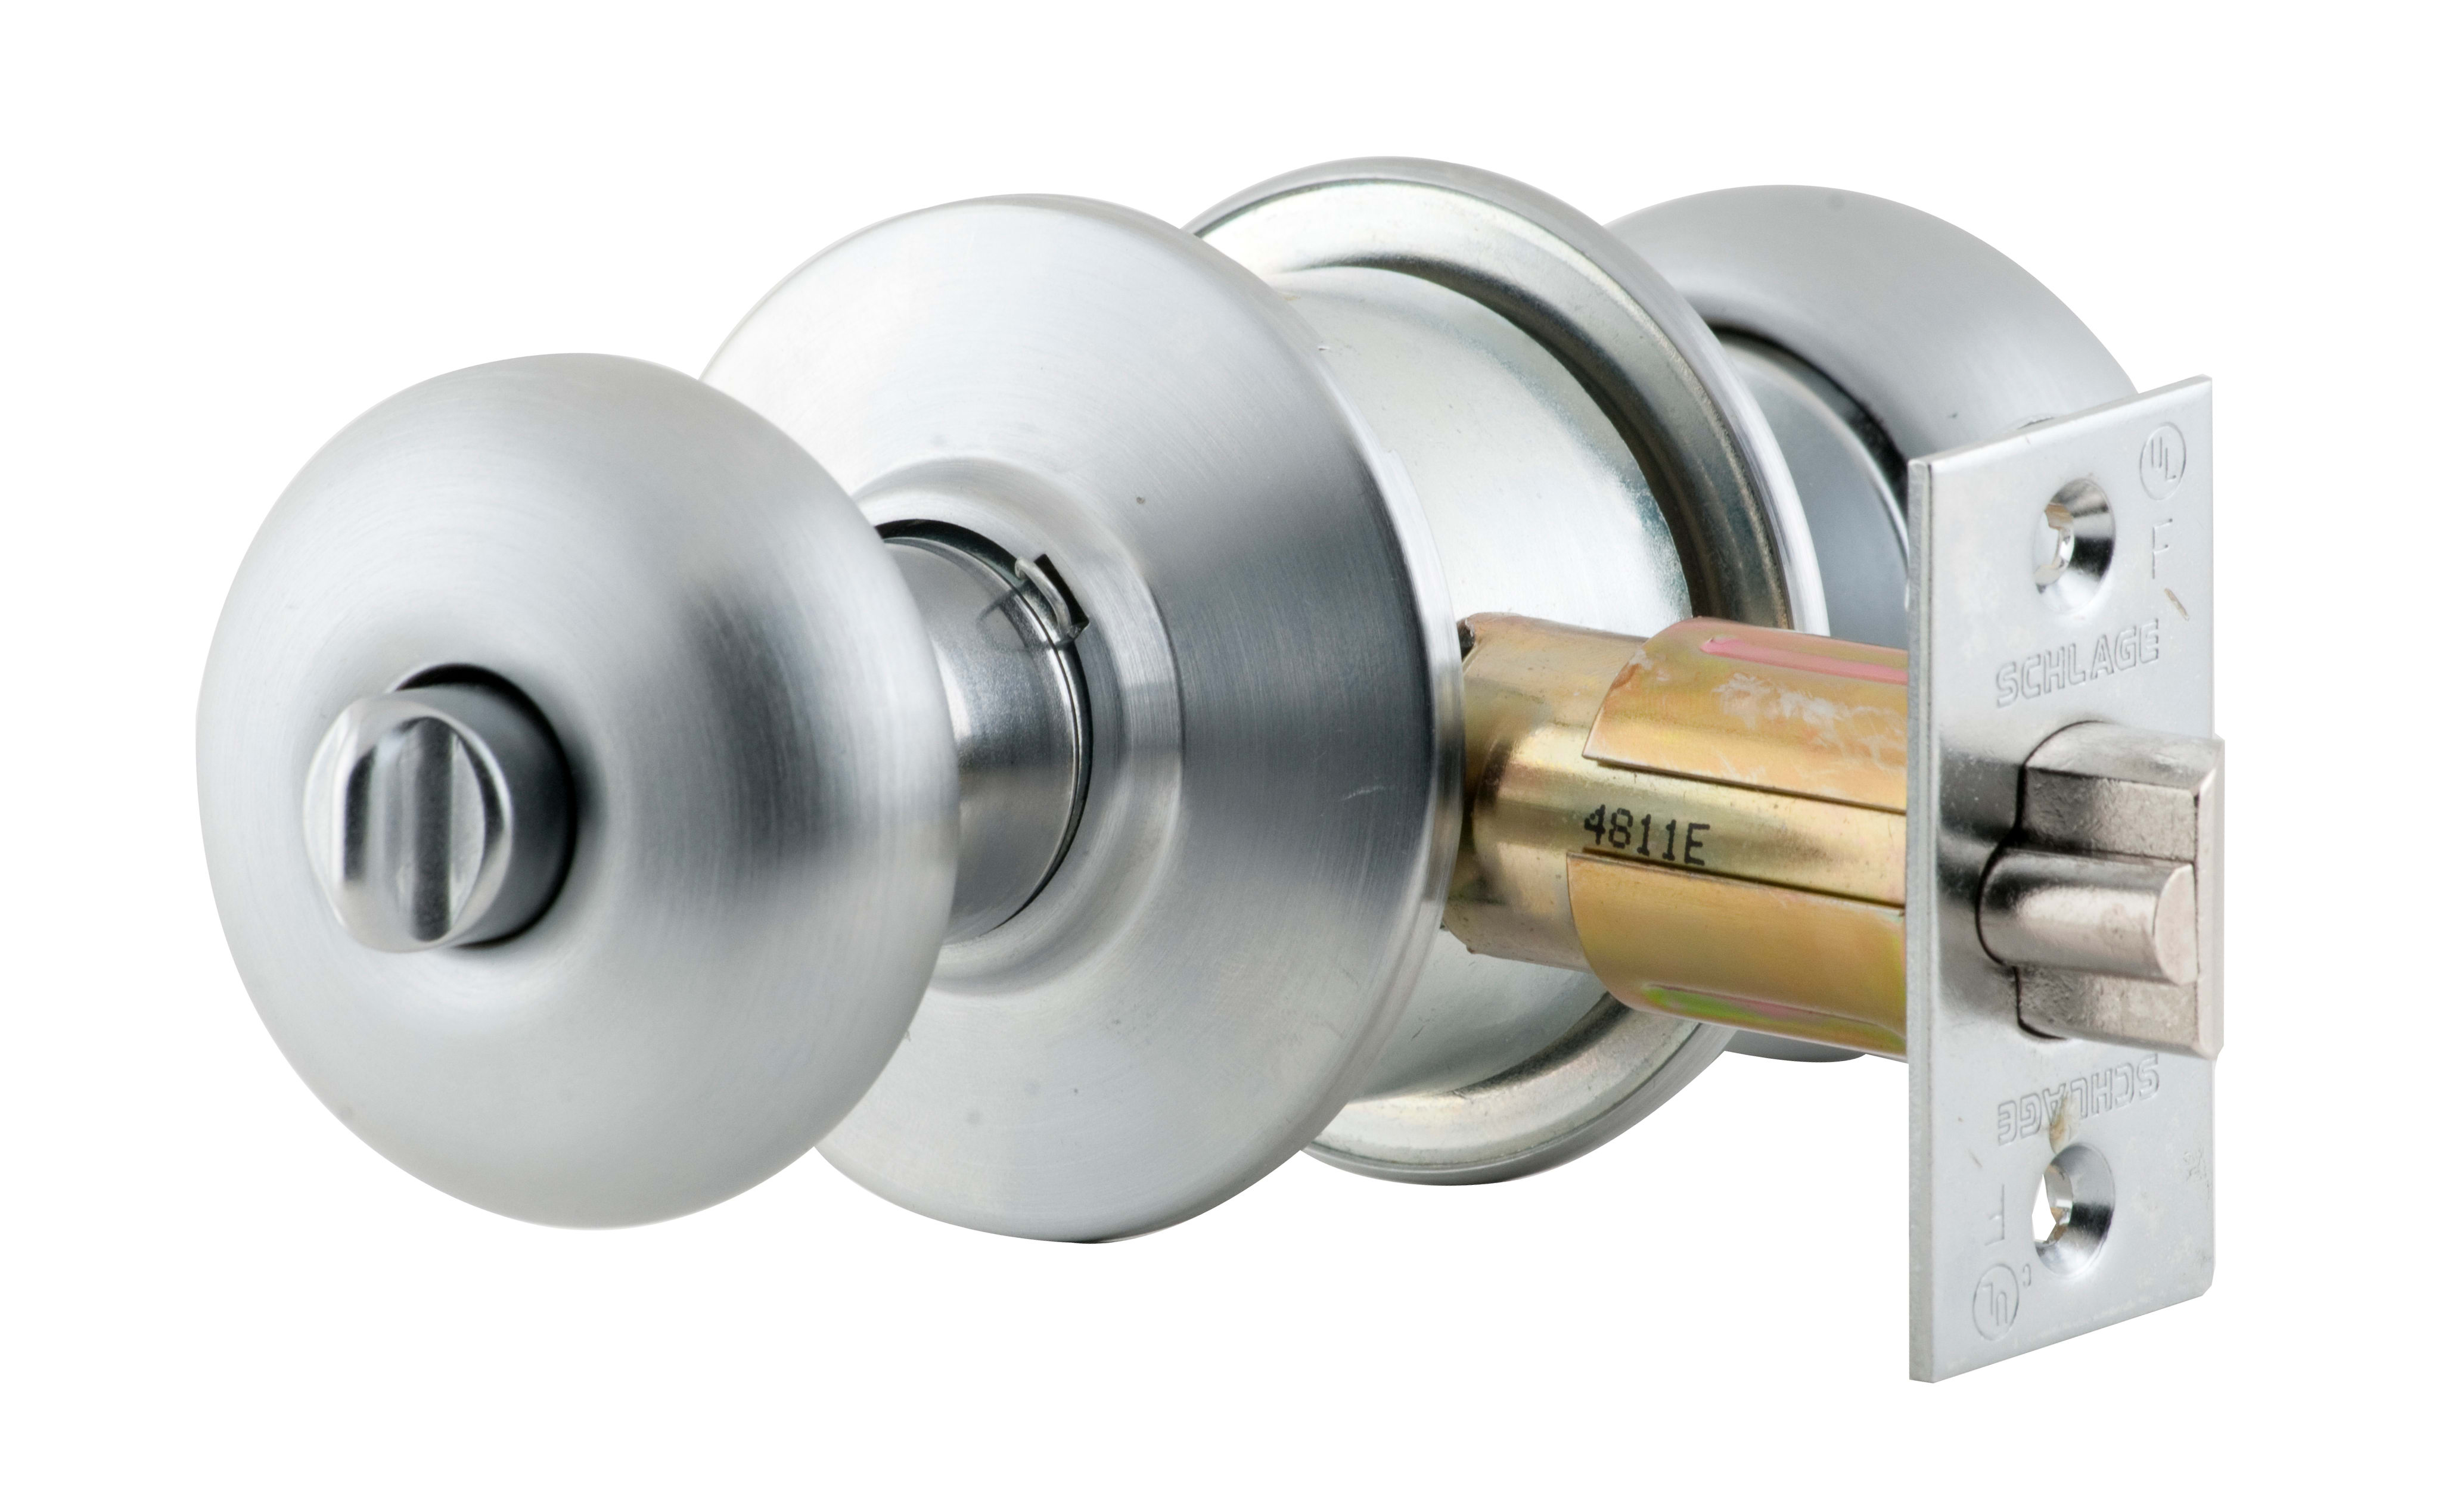 saturn and leve series size deadbolt no storeroom there interior interconnected lever with questions are product lock sat door cores chrome interchangeable commercial tubular full satin set yet knobs schlage